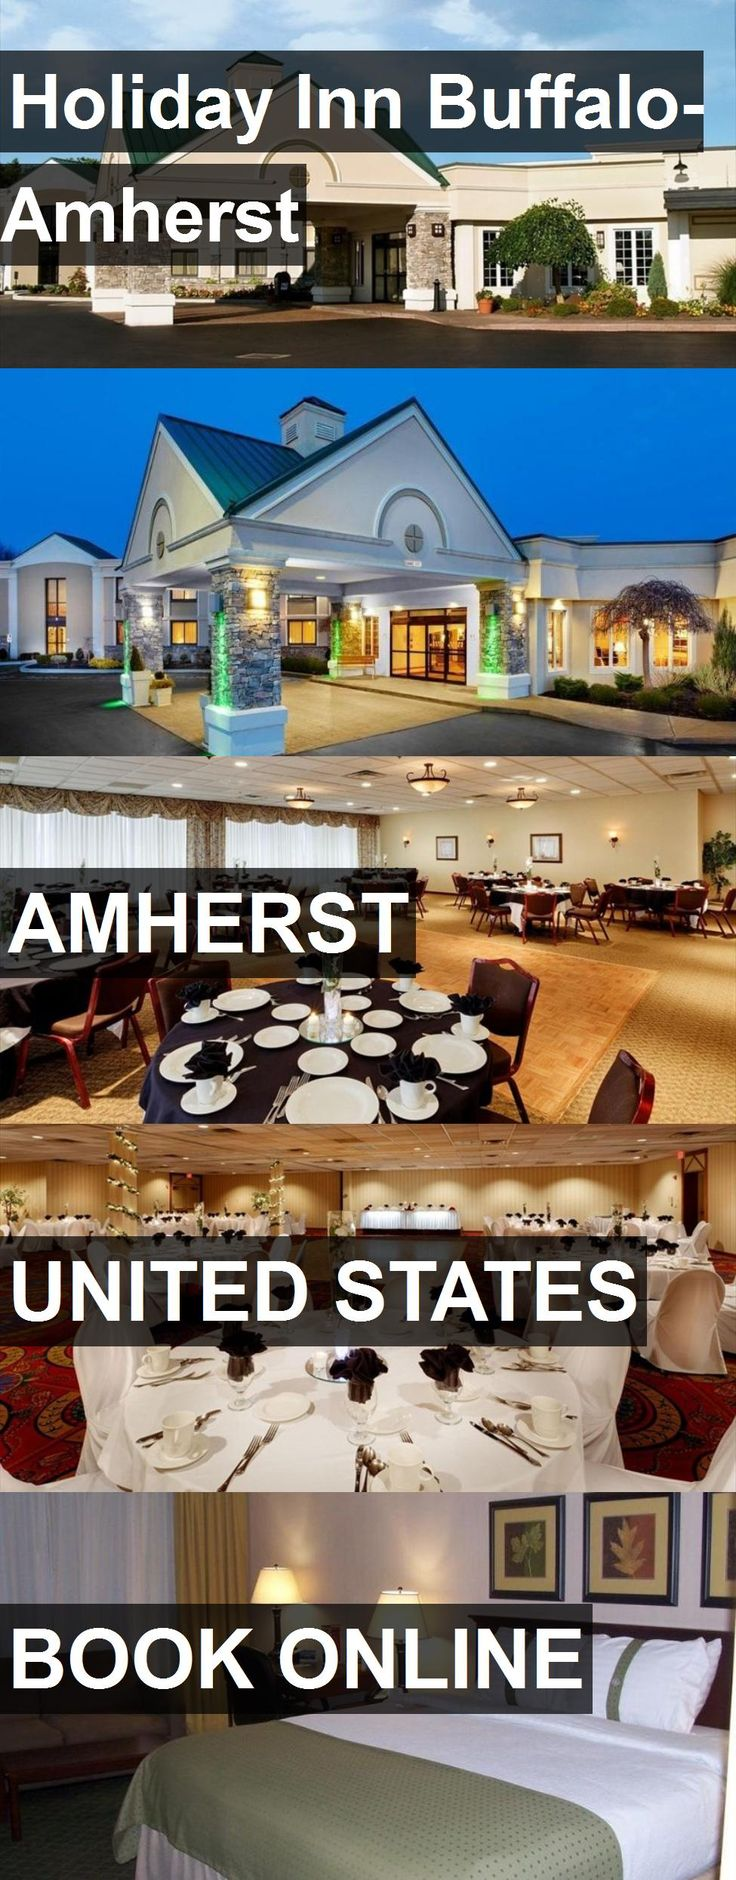 Us Map With State Abbreviations And Time Zones%0A Hotel Holiday Inn BuffaloAmherst in Amherst  United States  For more  information